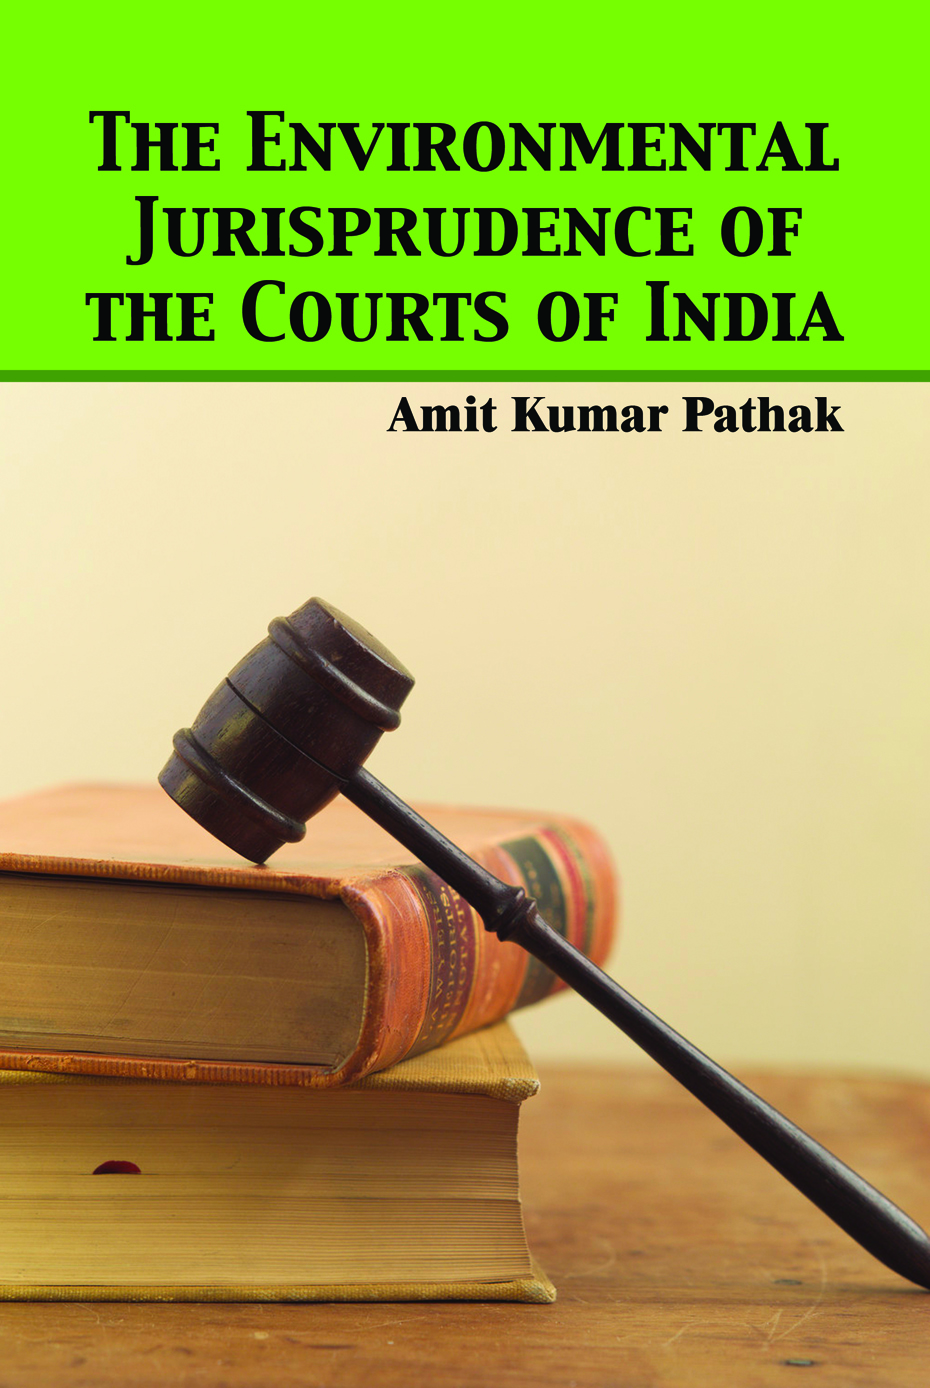 The Environmental Jurisprudence of the Courts of India